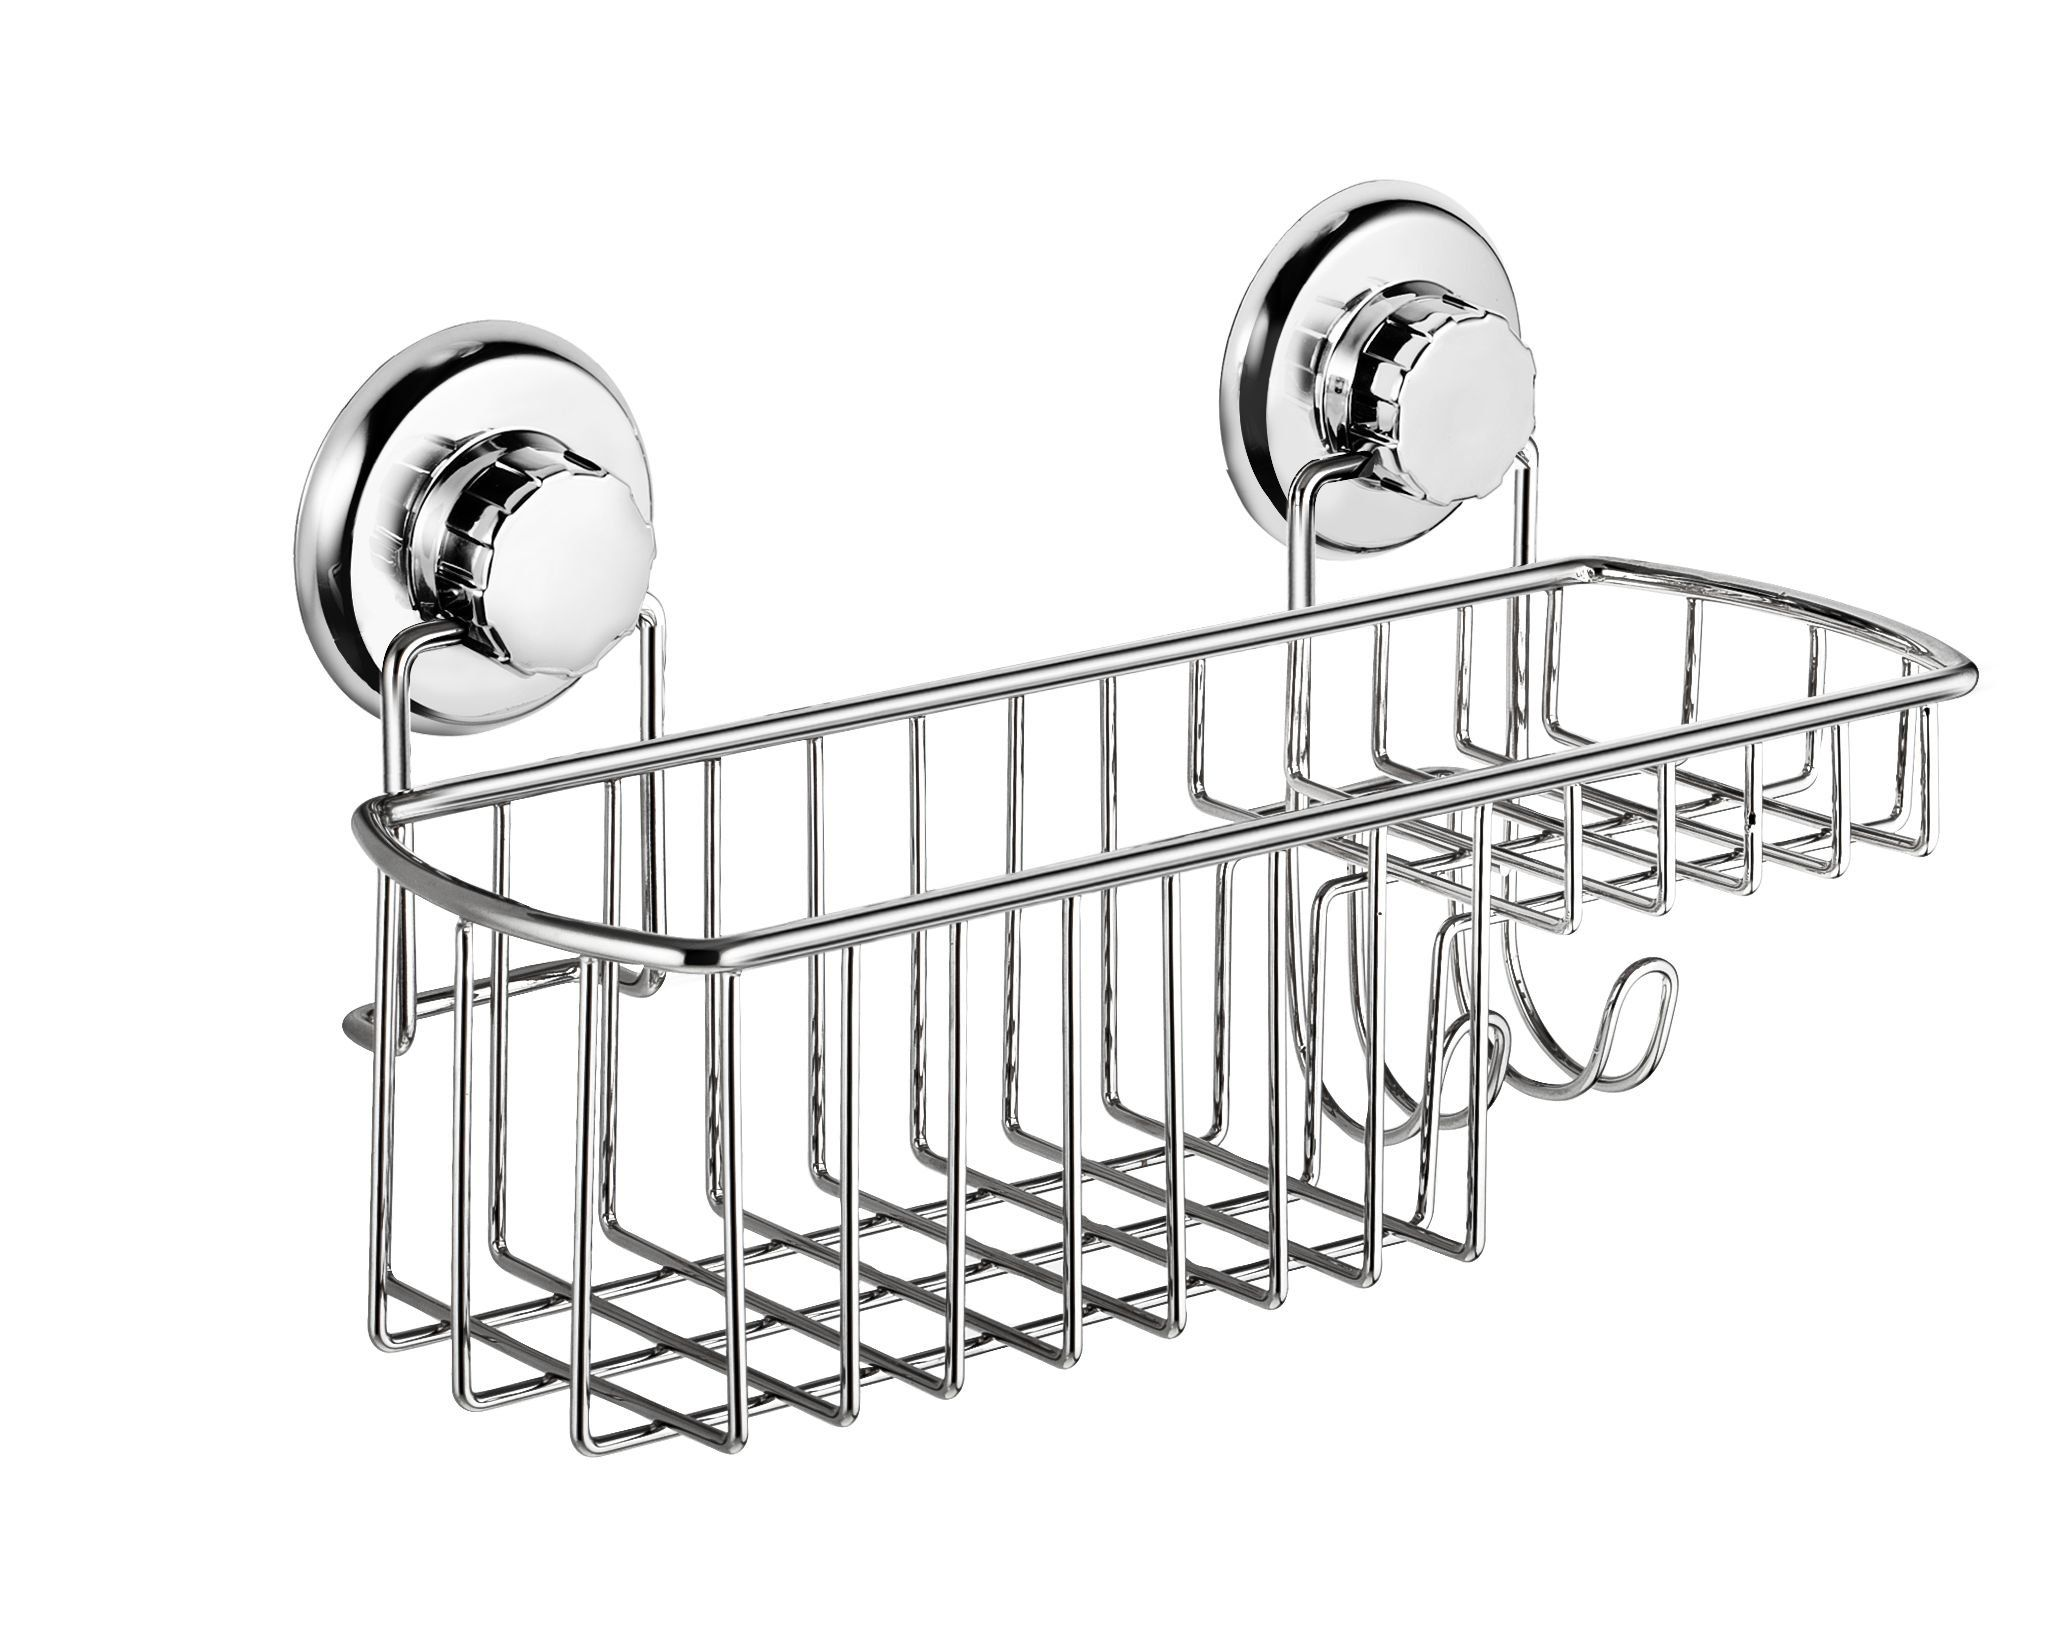 Hasko Accessories Powerful Vacuum Suction Cup Shower Caddy